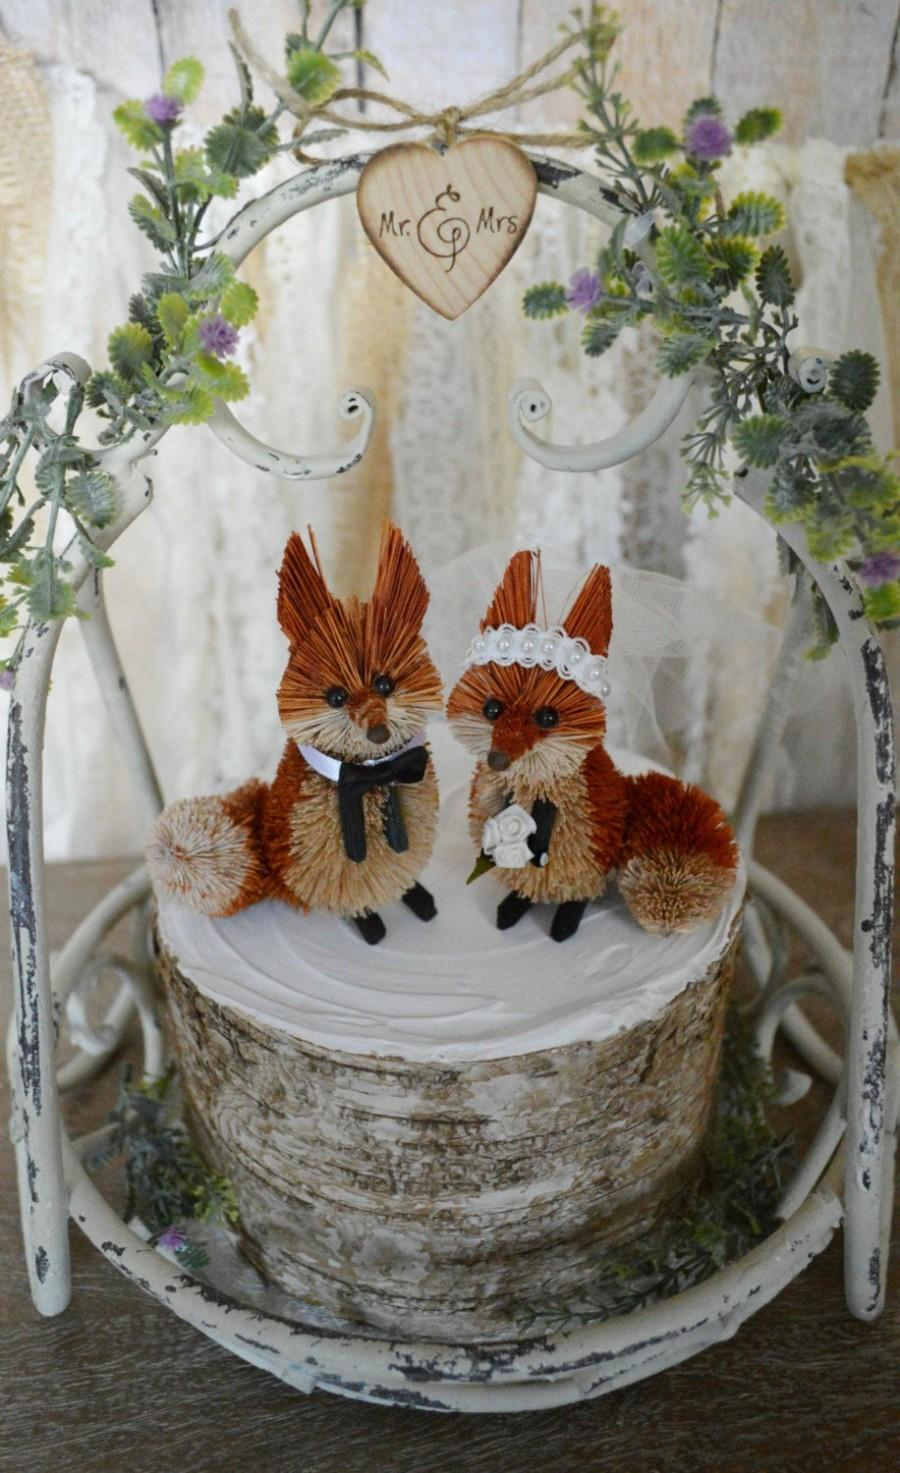 Wedding - Fox wedding cake topper fall autumn red fox bride and groom porcelain country rustic animal fox wedding Mr and Mrs decorations fox bride